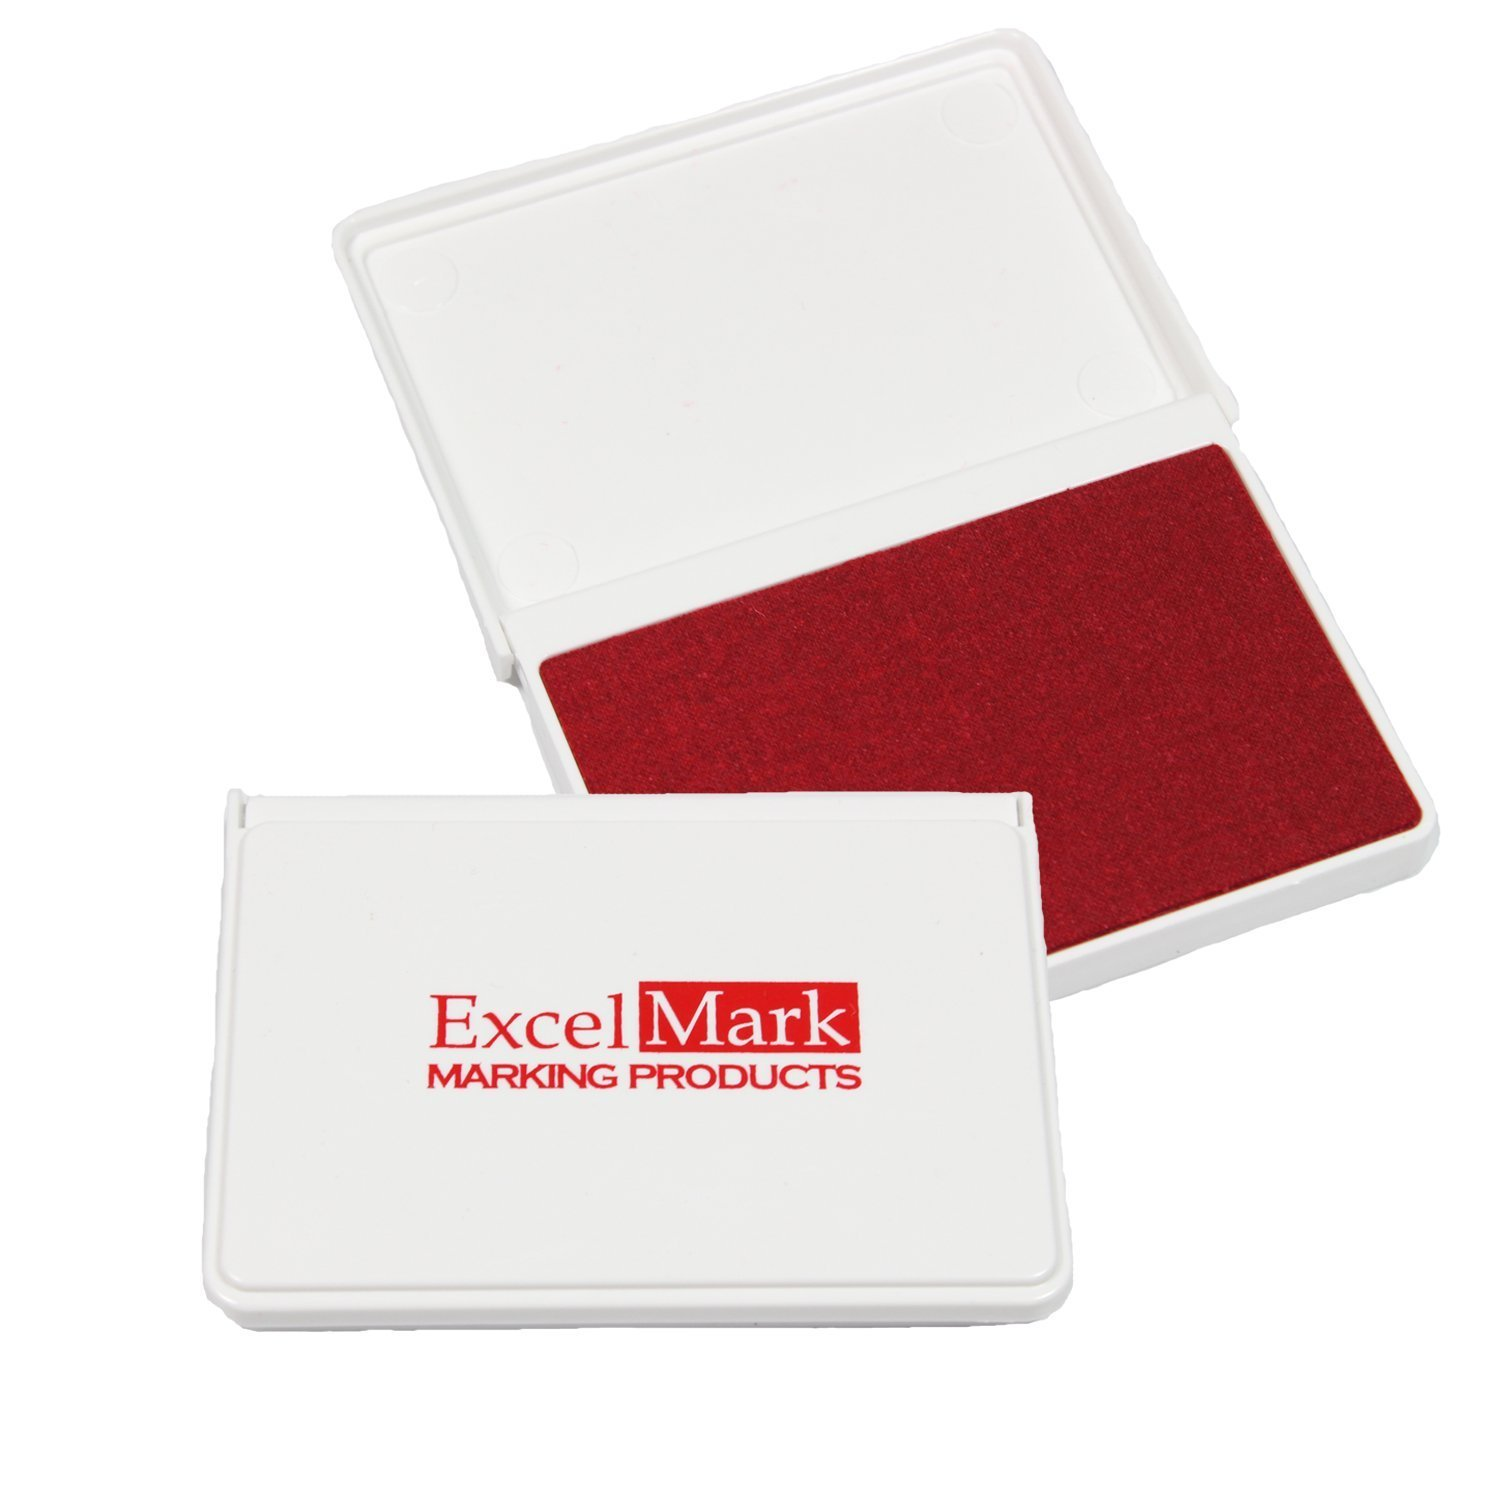 ExcelMark Ink Pad for Rubber Stamps 2-1/8 by 3-1/4 (Black) Discount Rubber Stamps STAMP PAD - 0 - BLACK